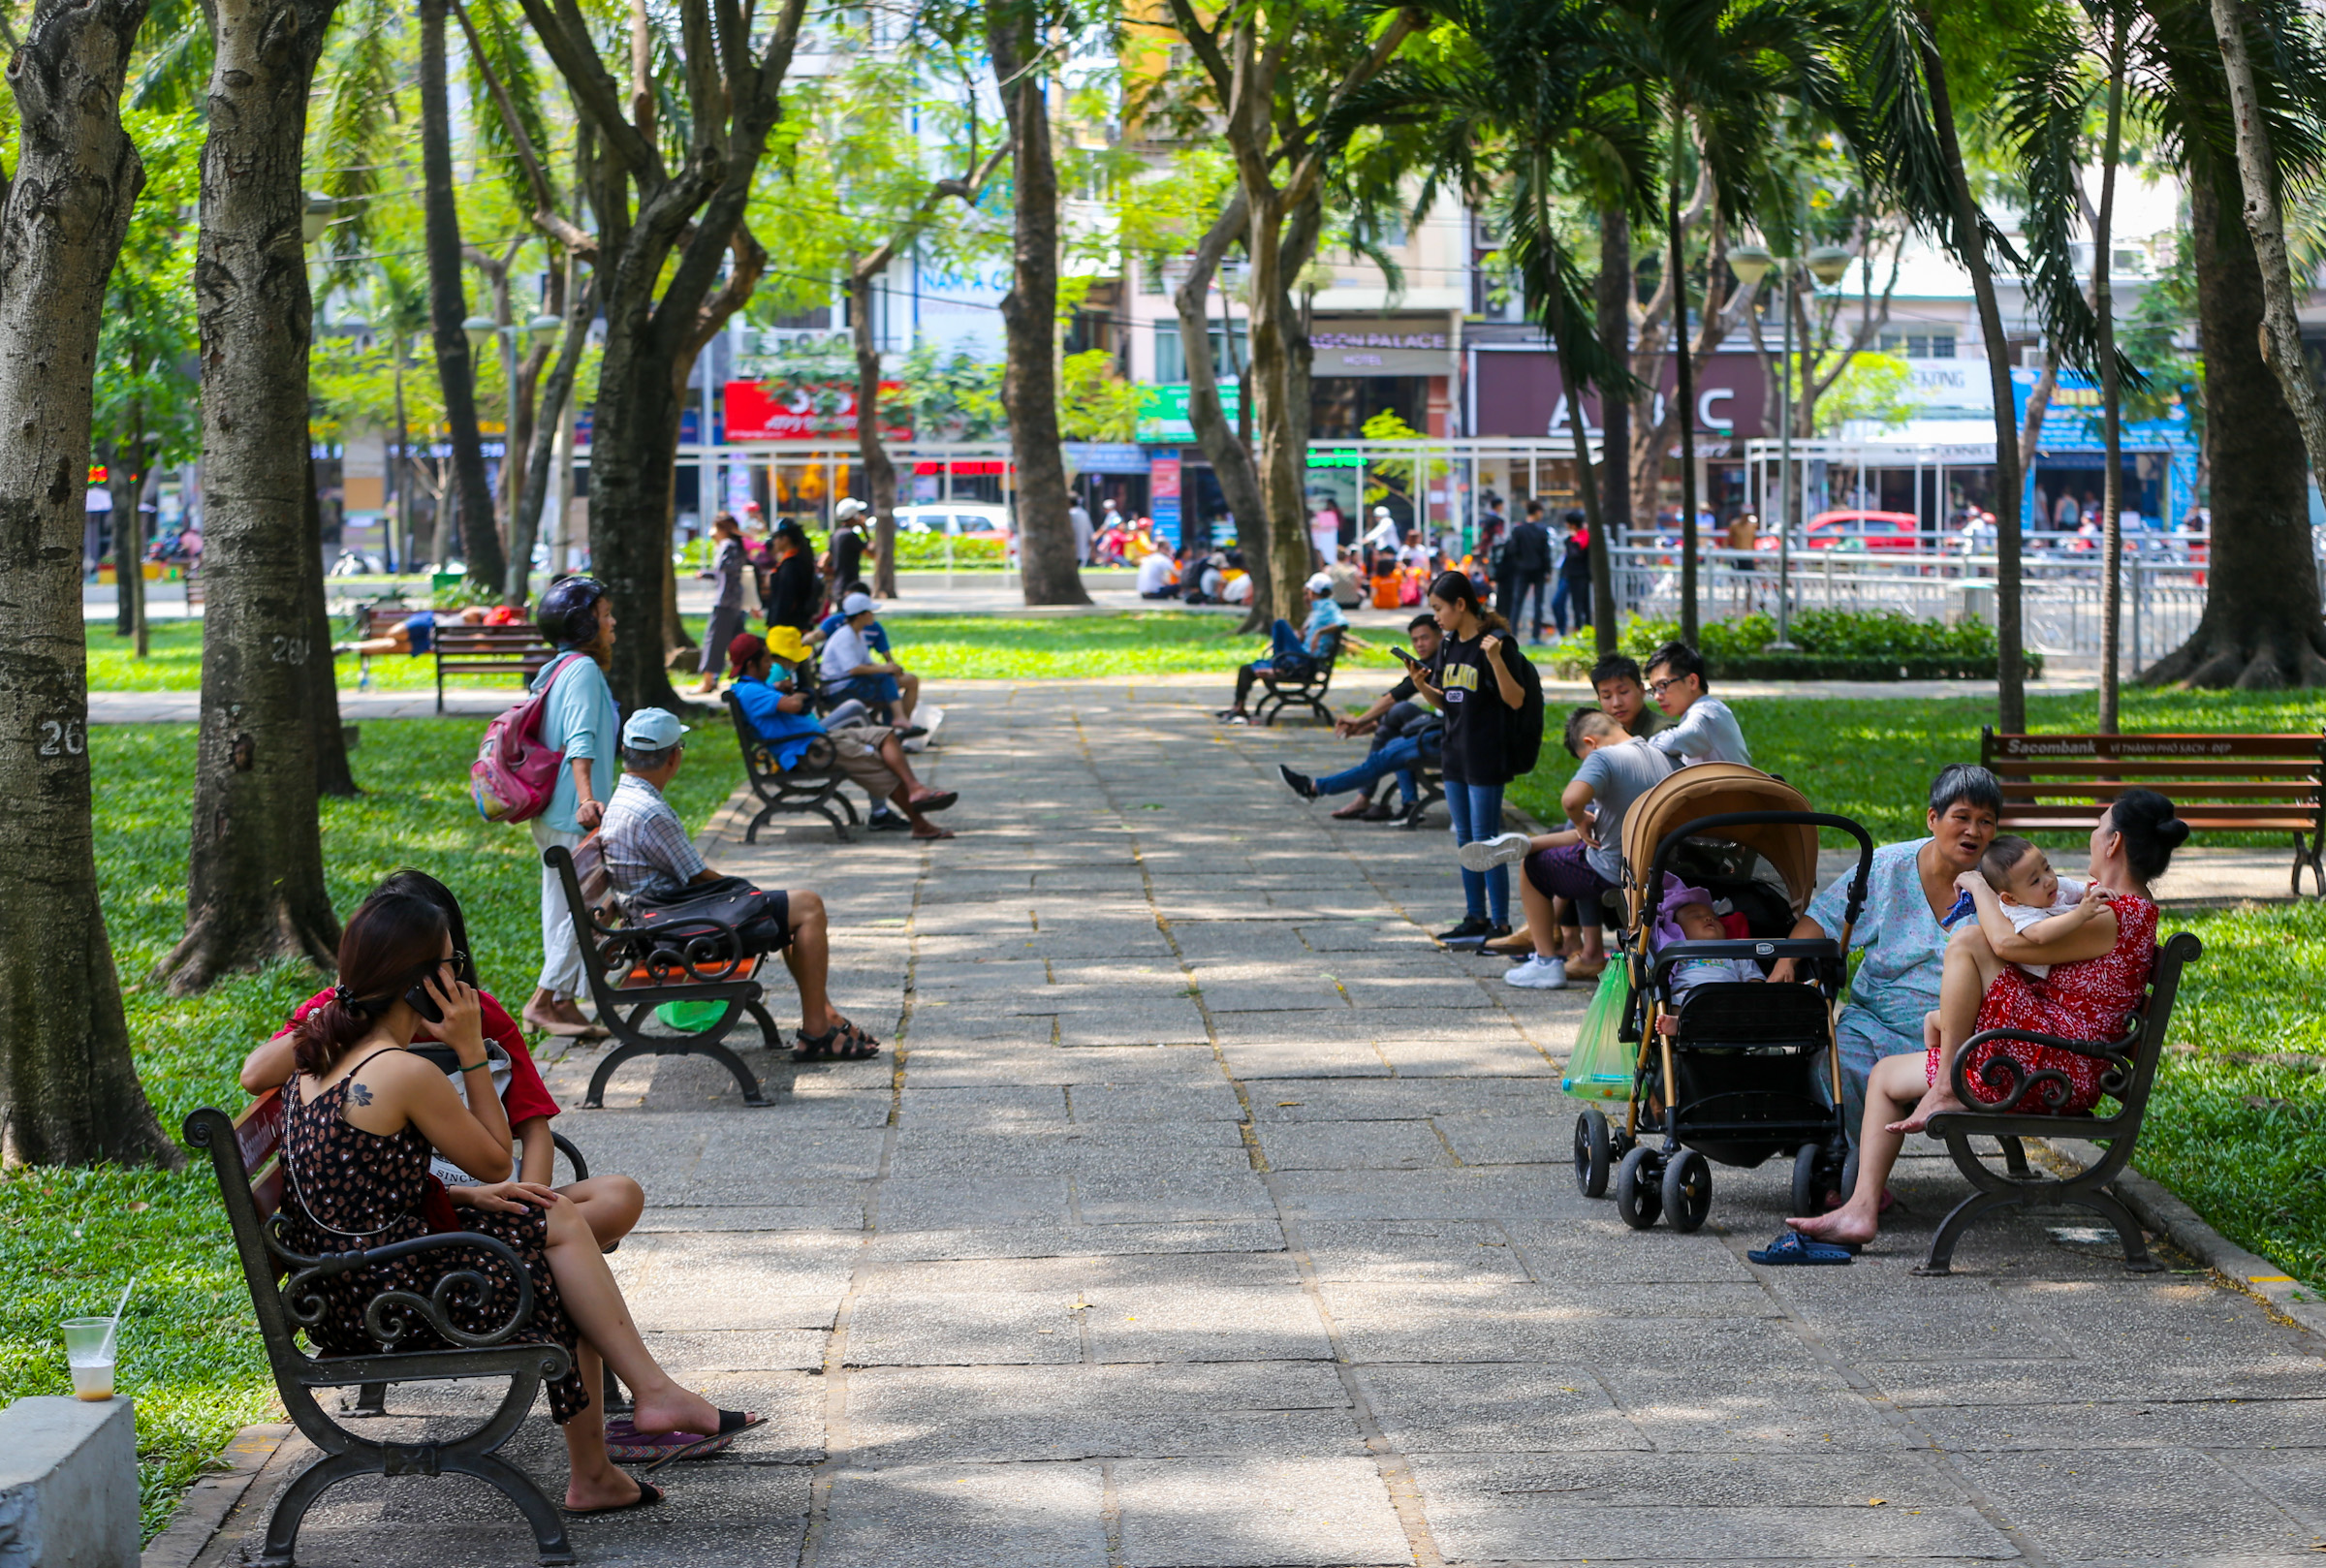 People gather at a park in HCMC, April 2019. Photo by VnExpress/Quynh Tran.